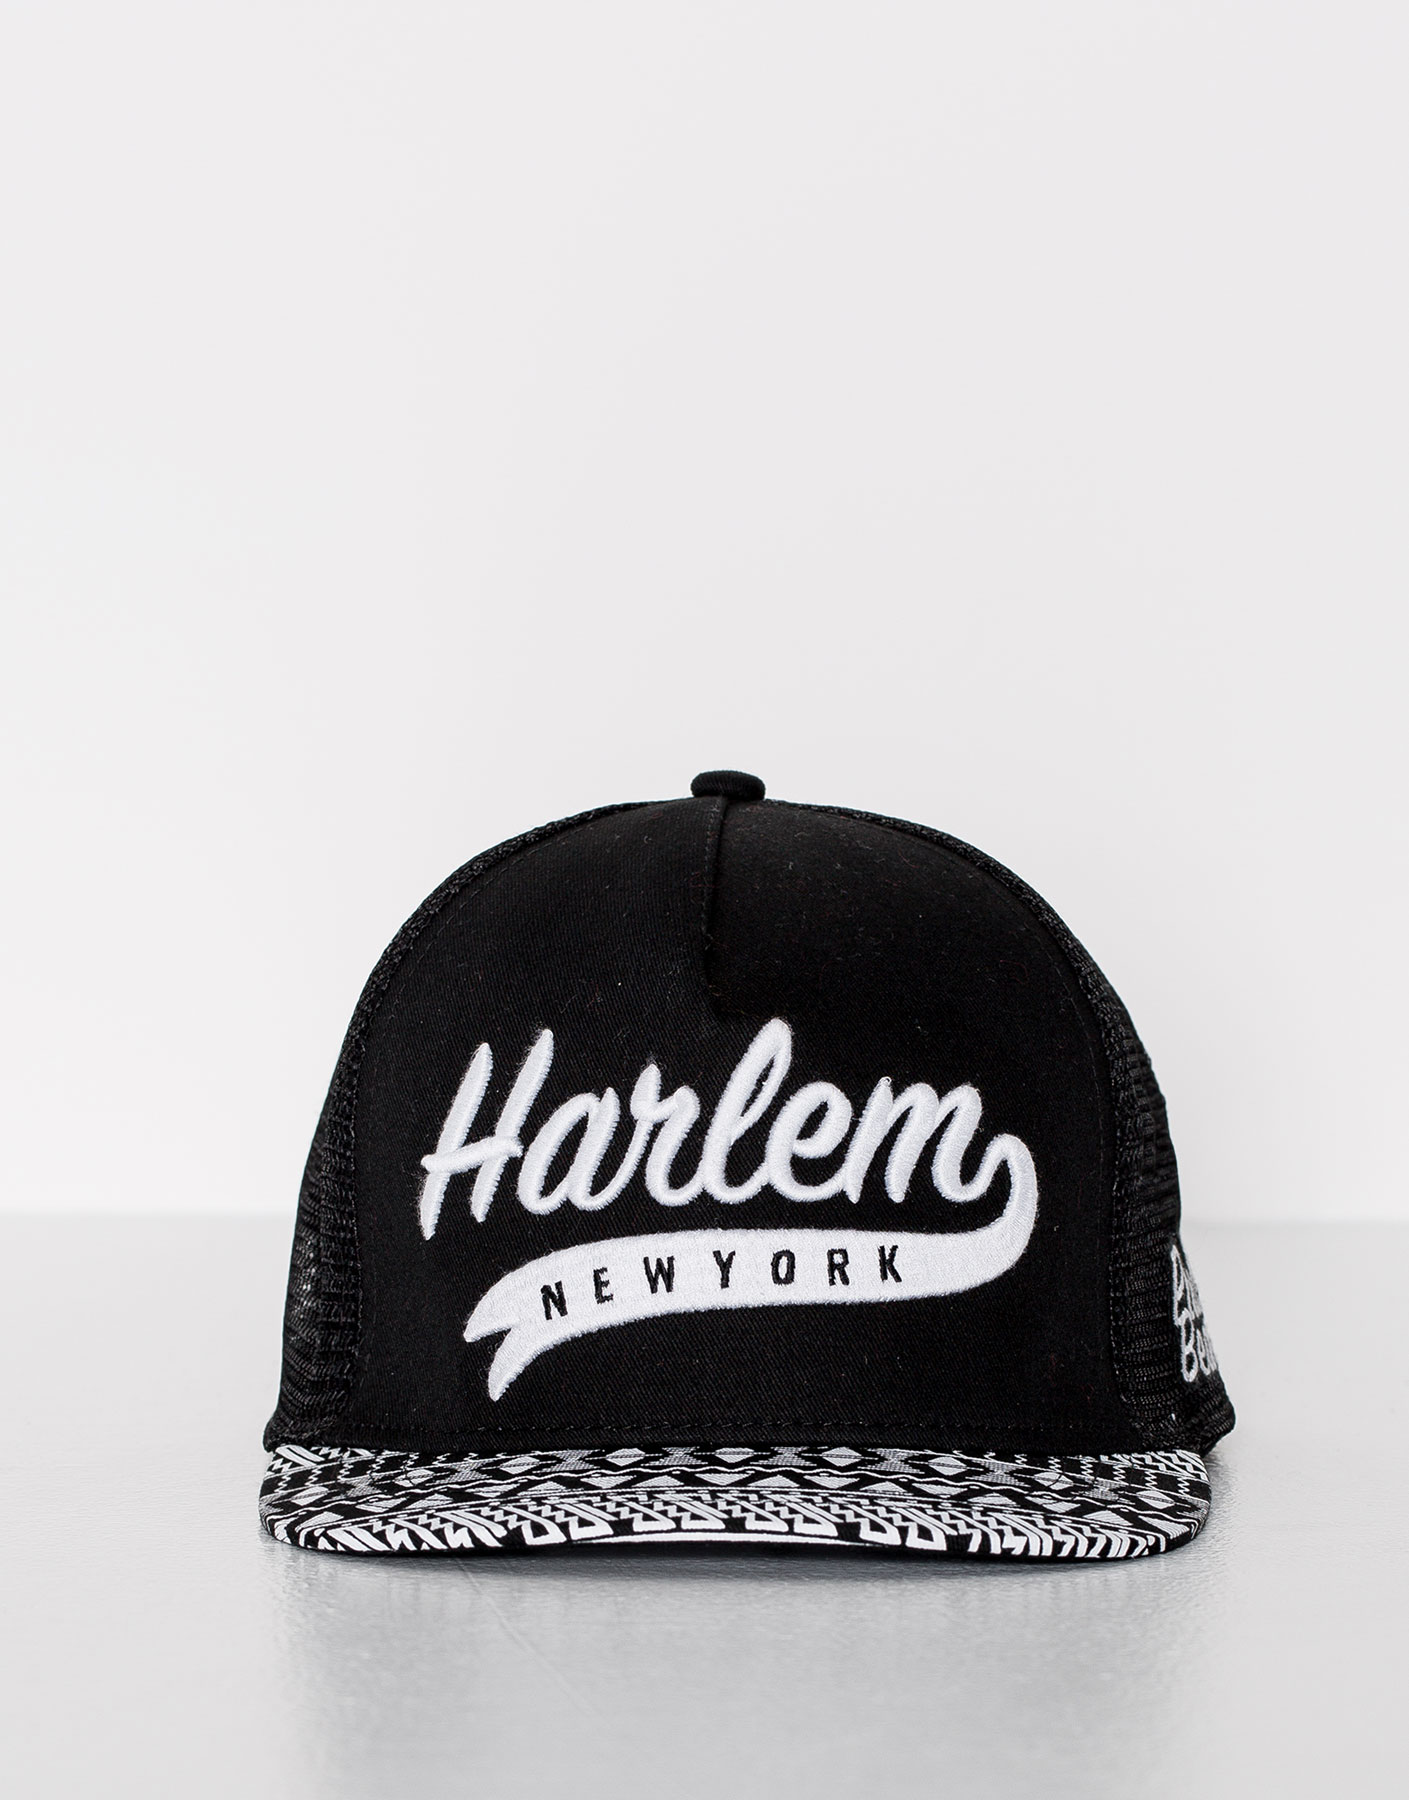 Gorra harlem new york